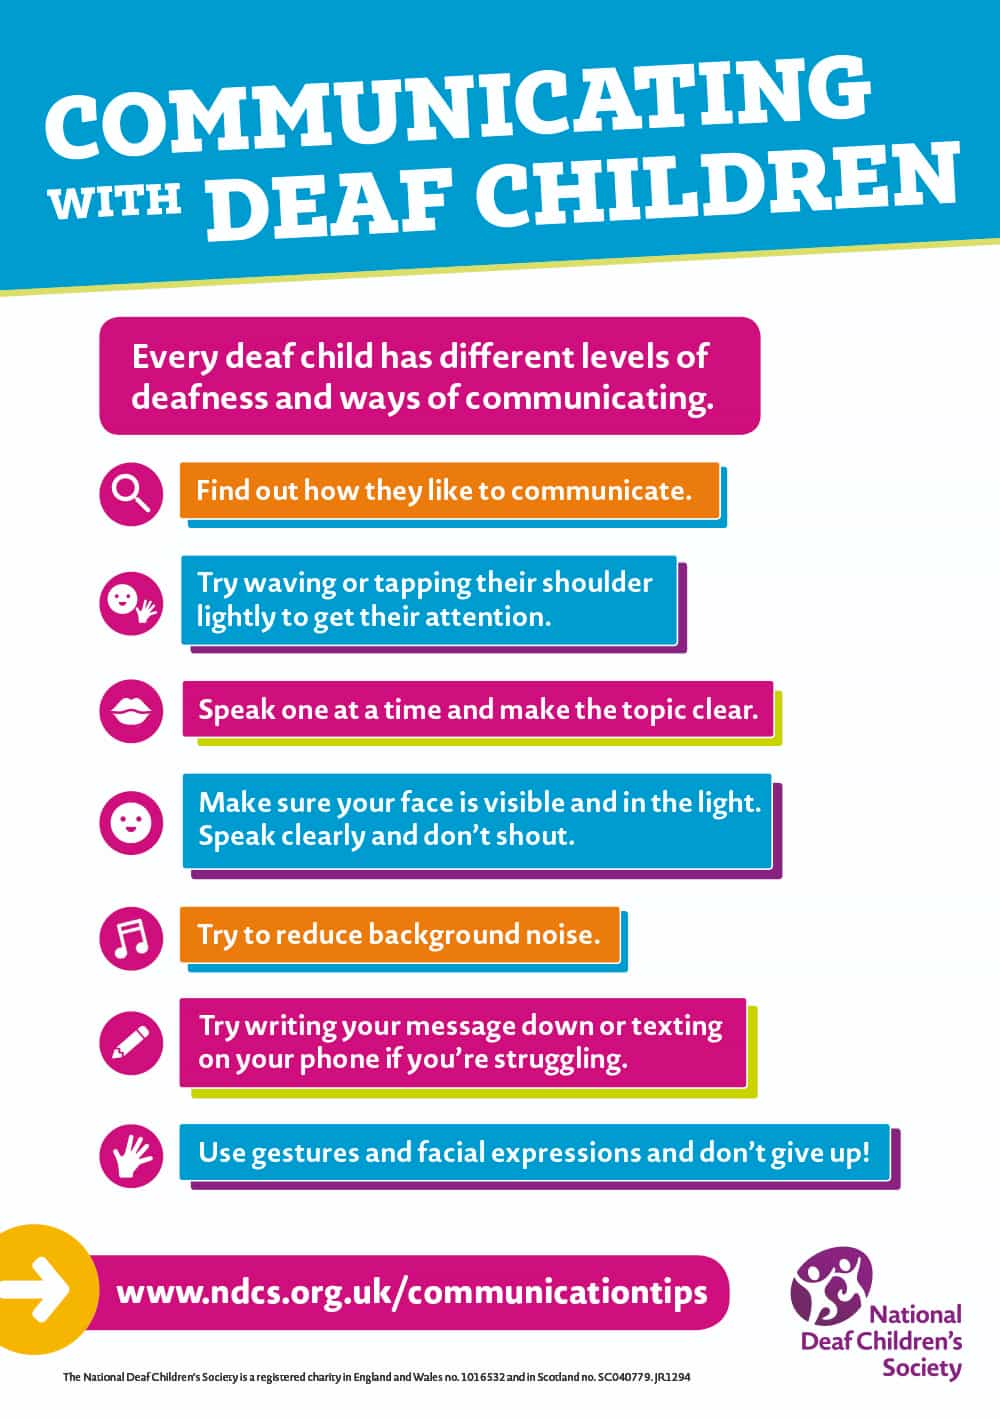 Communicating with Deaf Children flyer